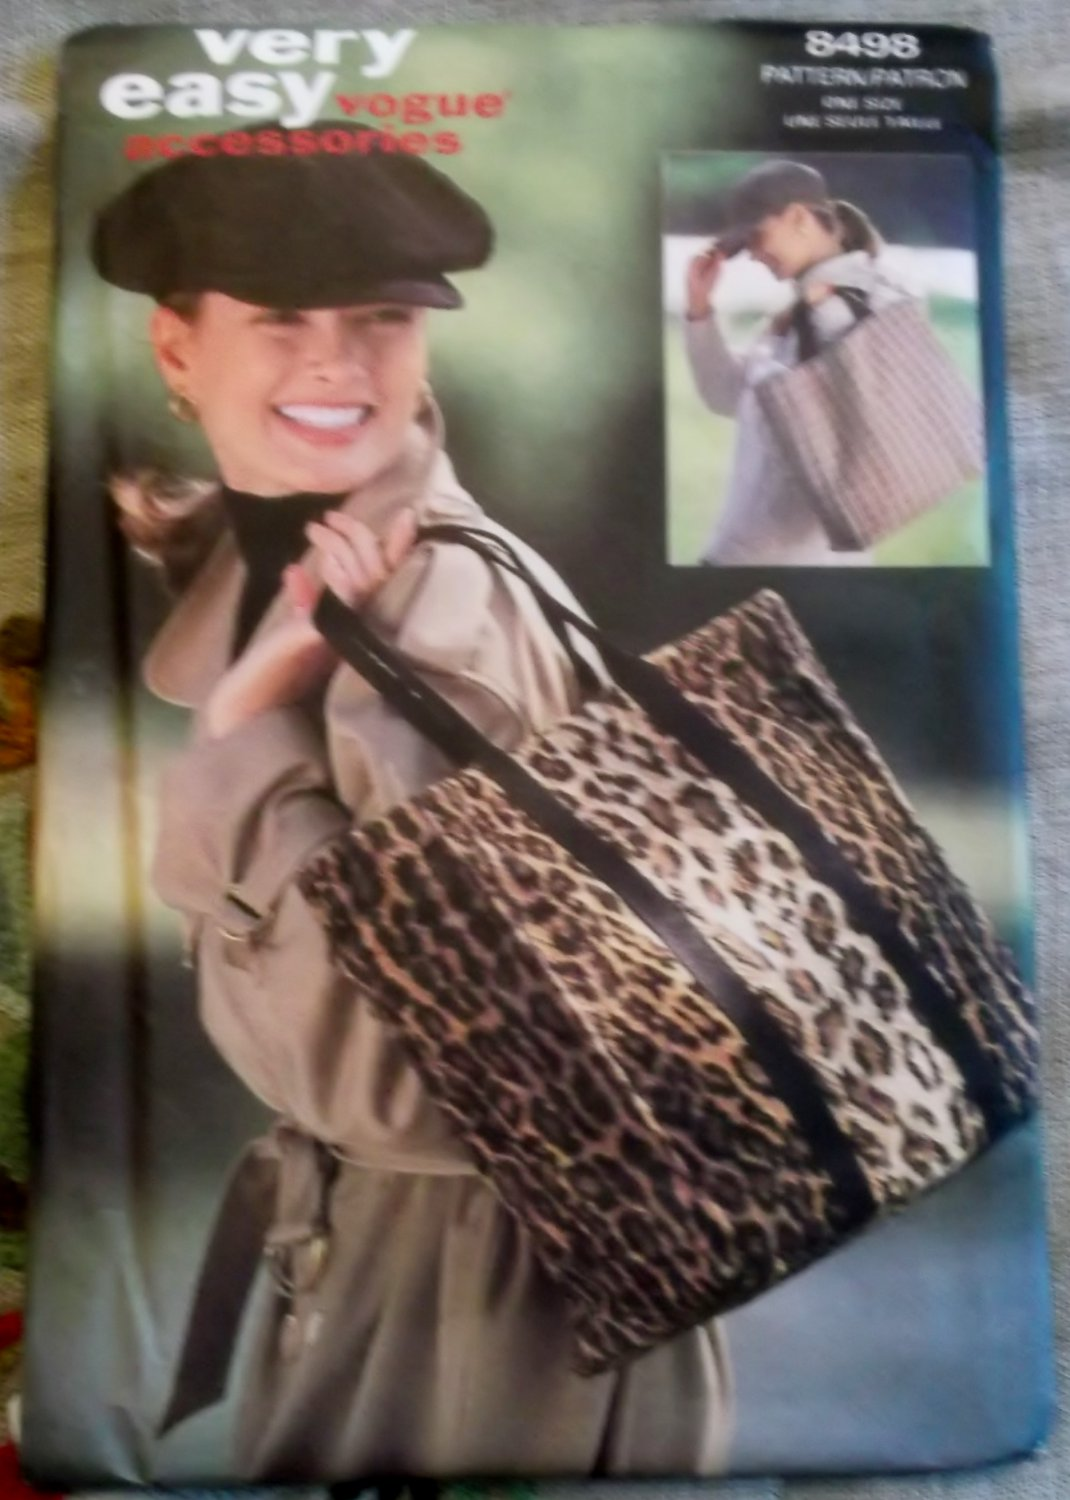 Very Easy Vogue 8498 Hat & Tote Bag Pattern, One Size, Uncut